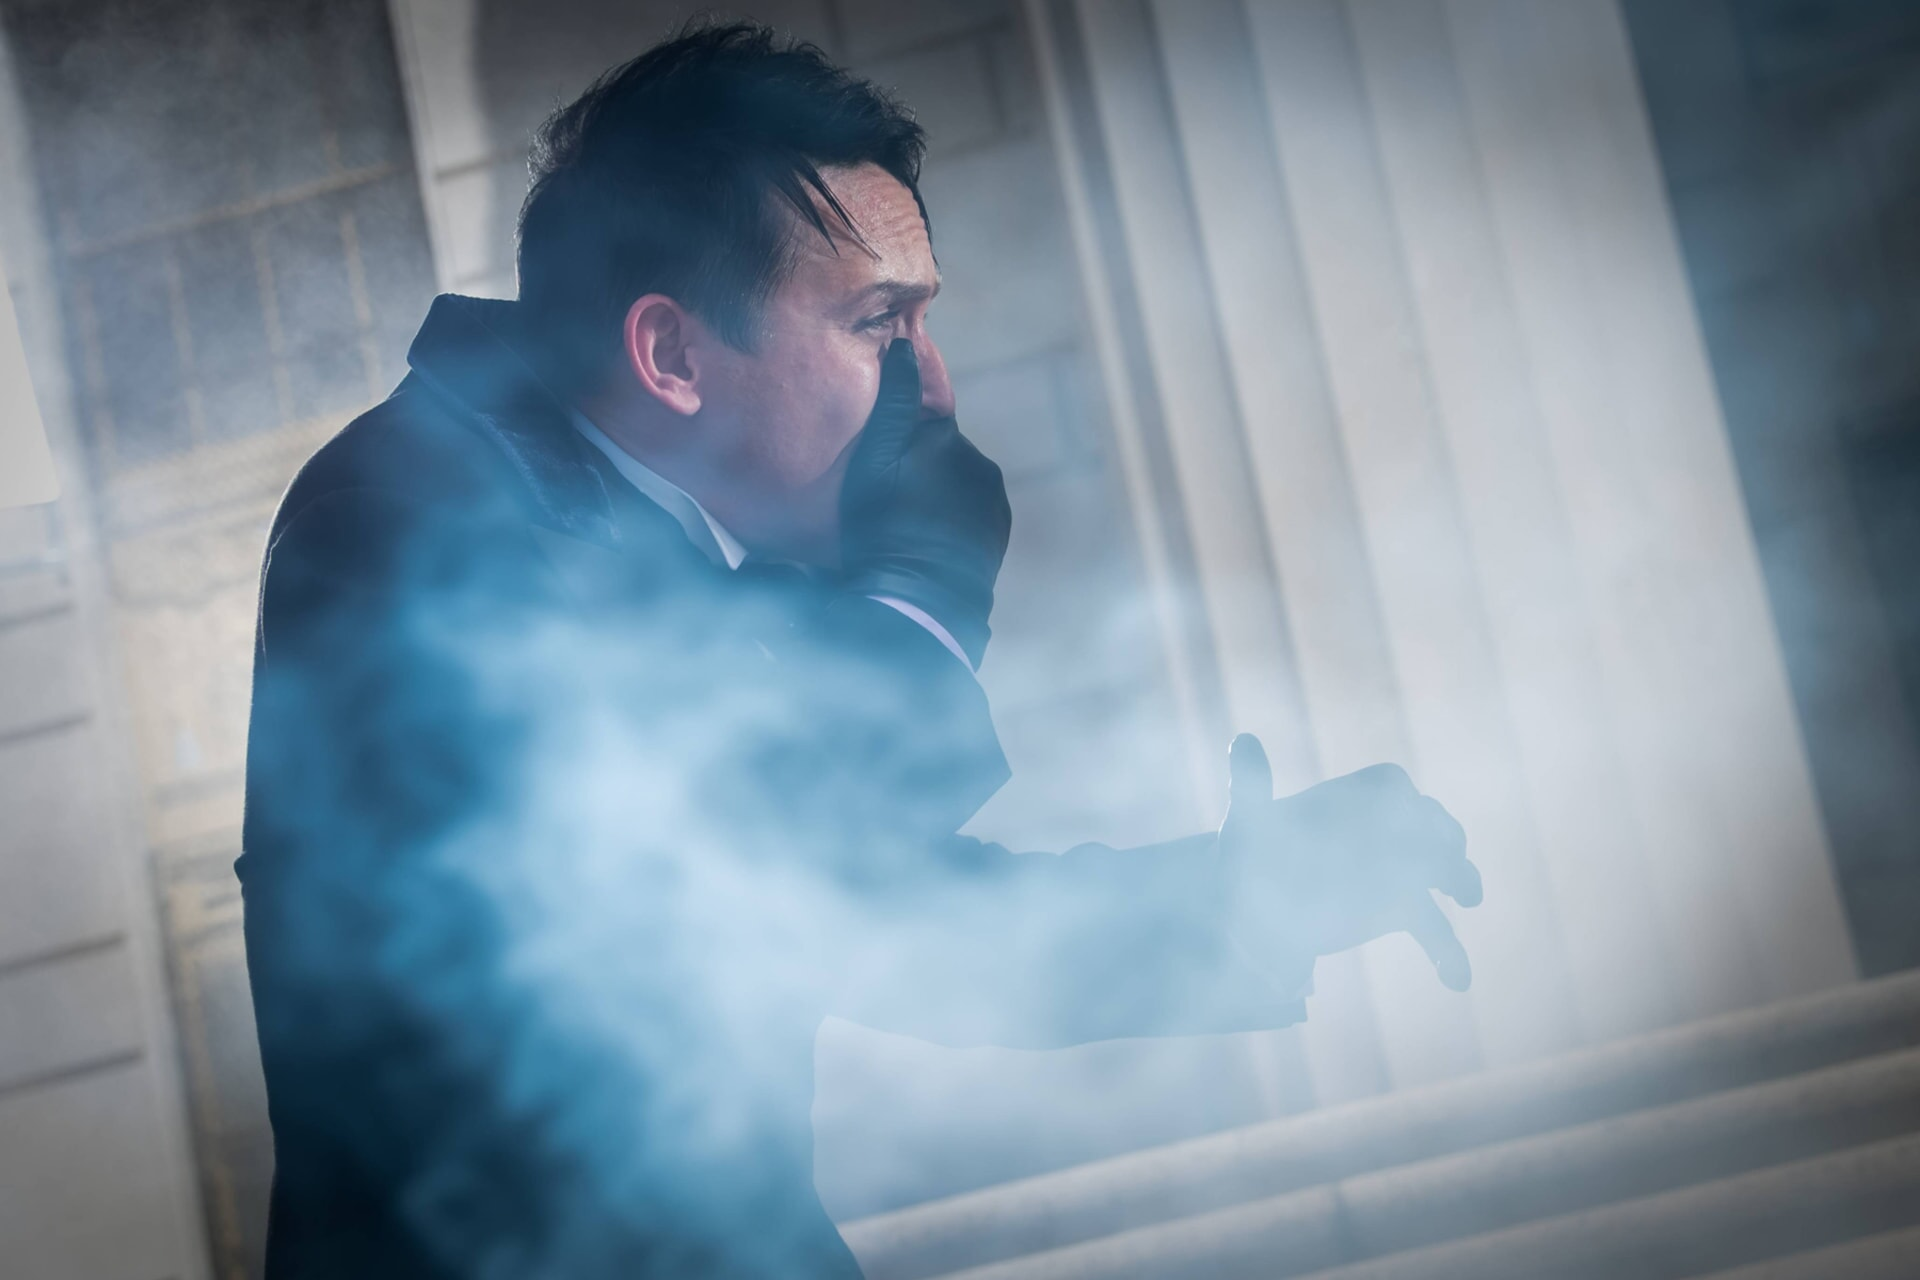 """Robin Lord Taylor as Oswald Cobblepot / The Penguin. Gotham 3, ep. 5 """"Any Thing For You"""""""